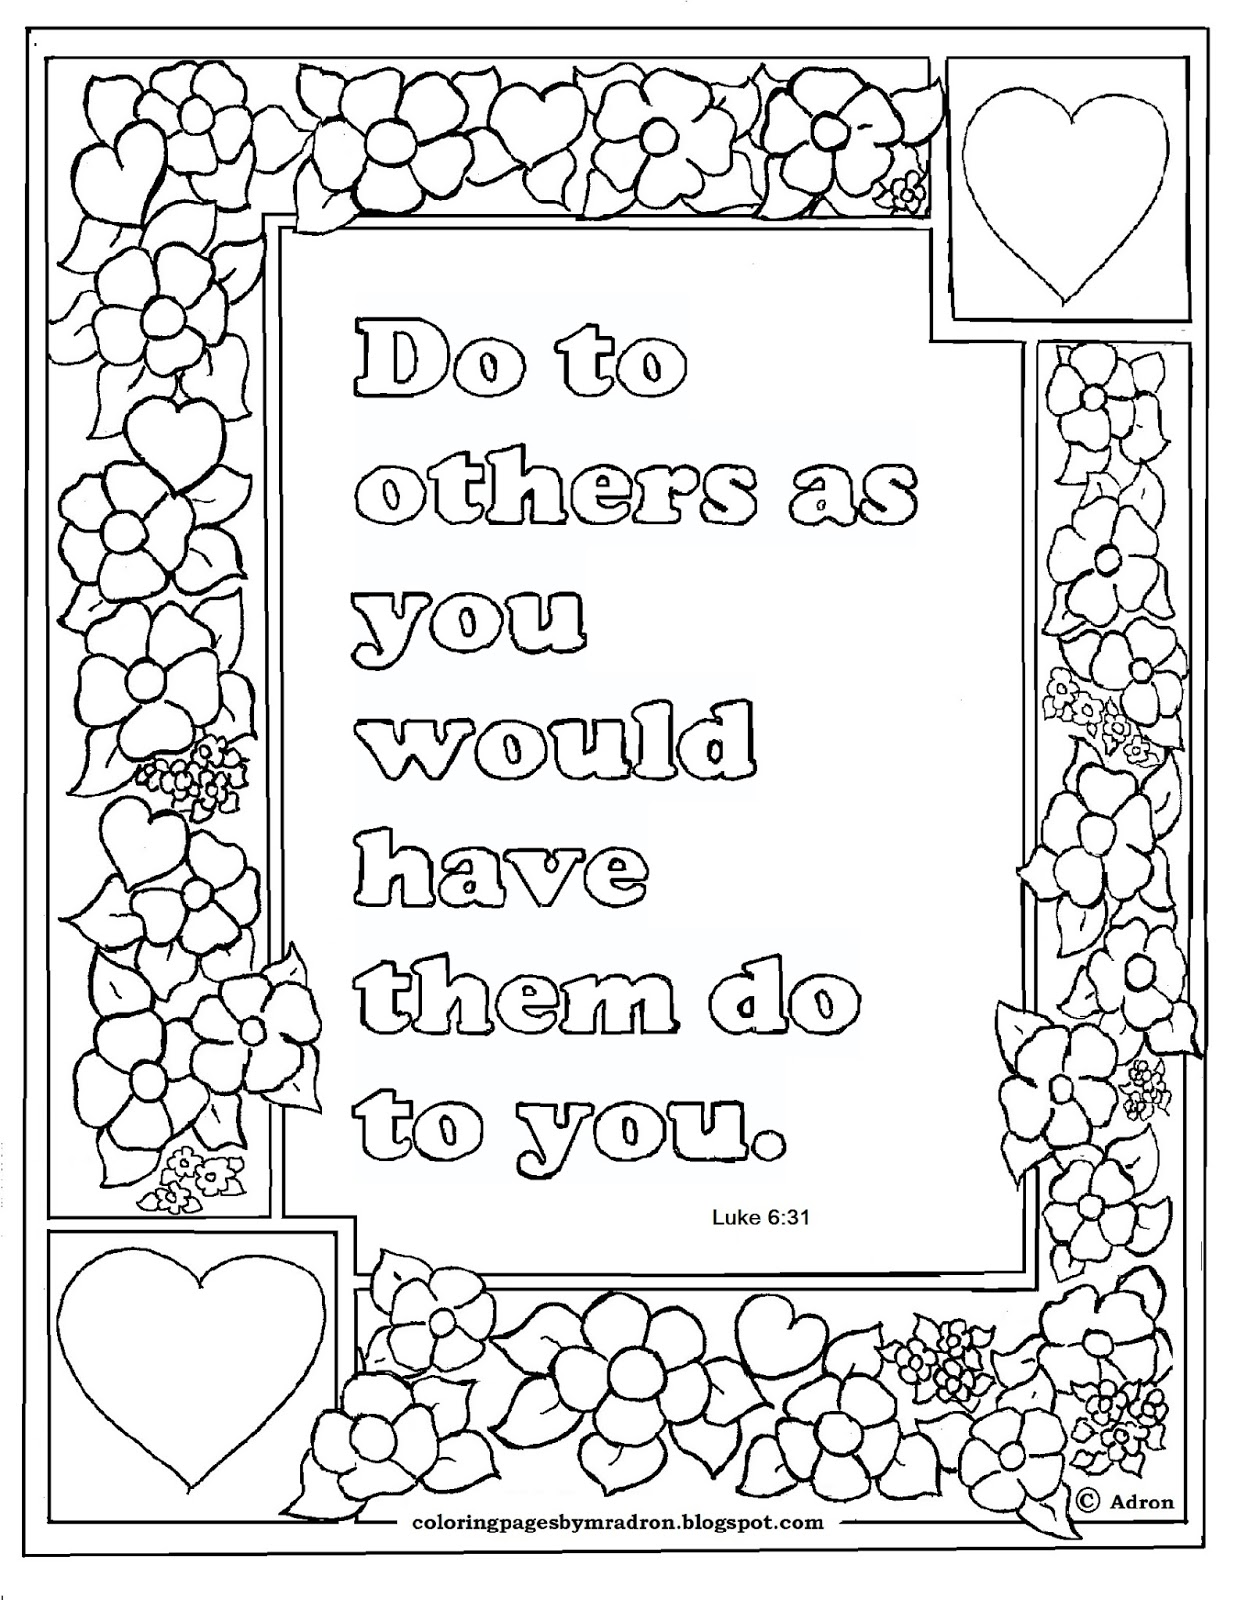 Luke 6 31 Coloring Page Coloring Pages